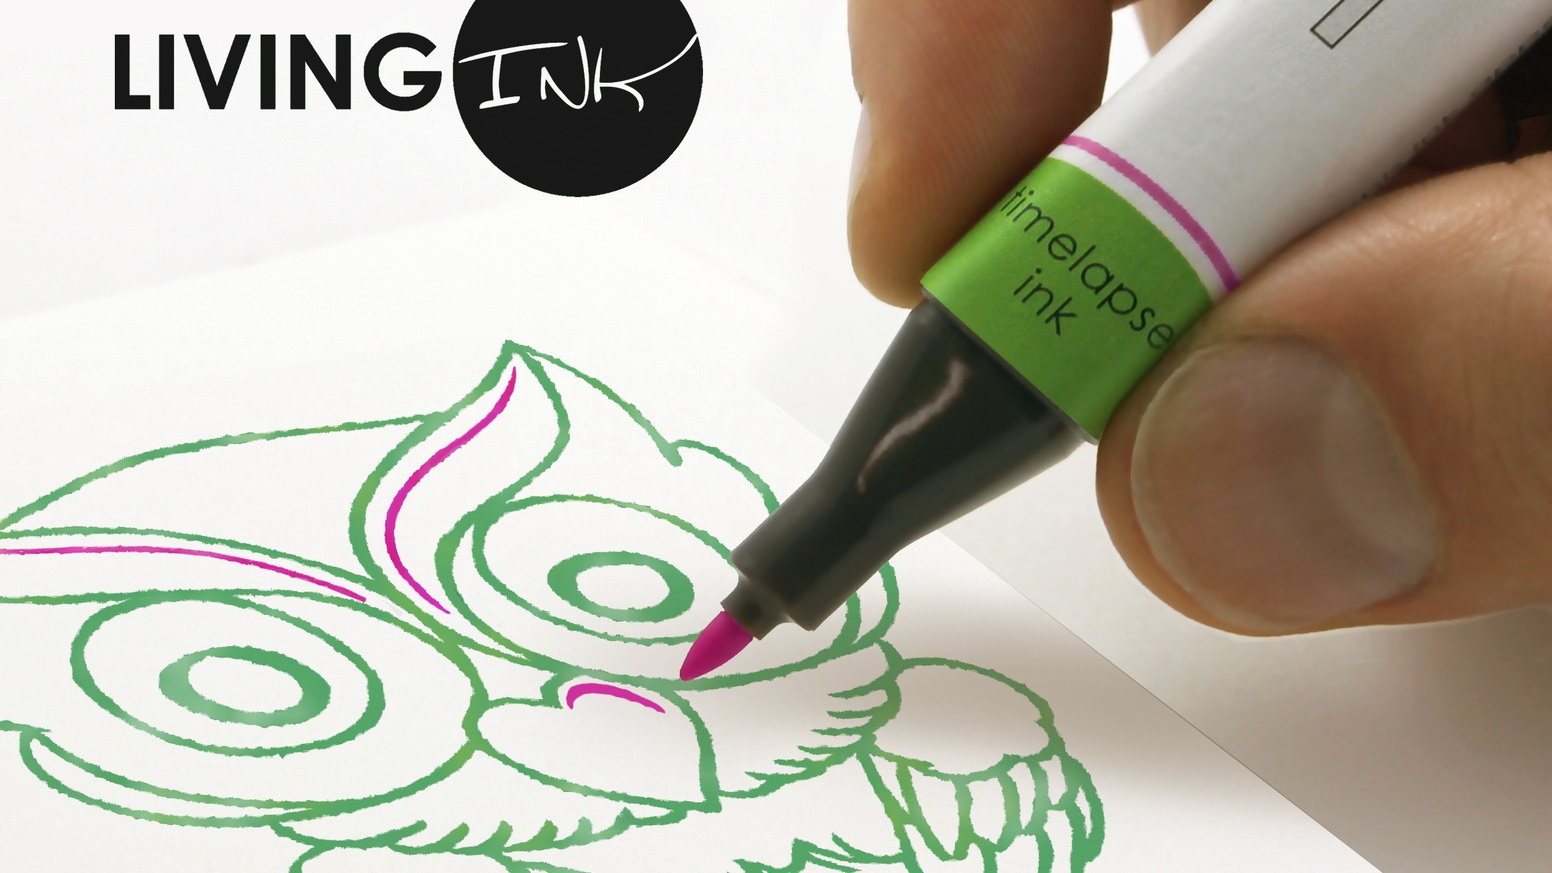 The world's first ink that grows—revealing what you write, sketch, or paint over several days.